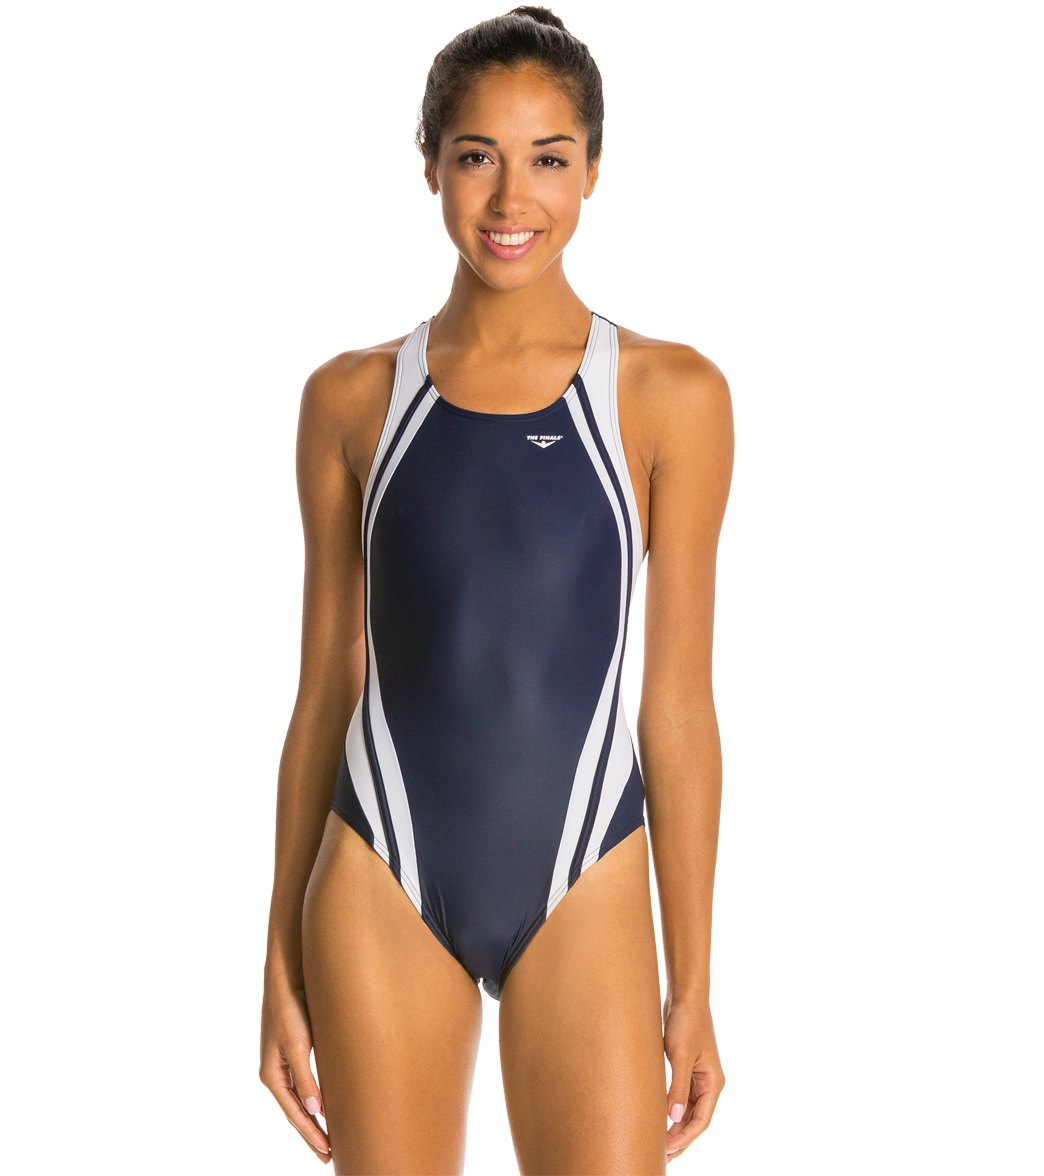 TYR The Finals Reactor Splice Competition Back One Piece Swimsuit